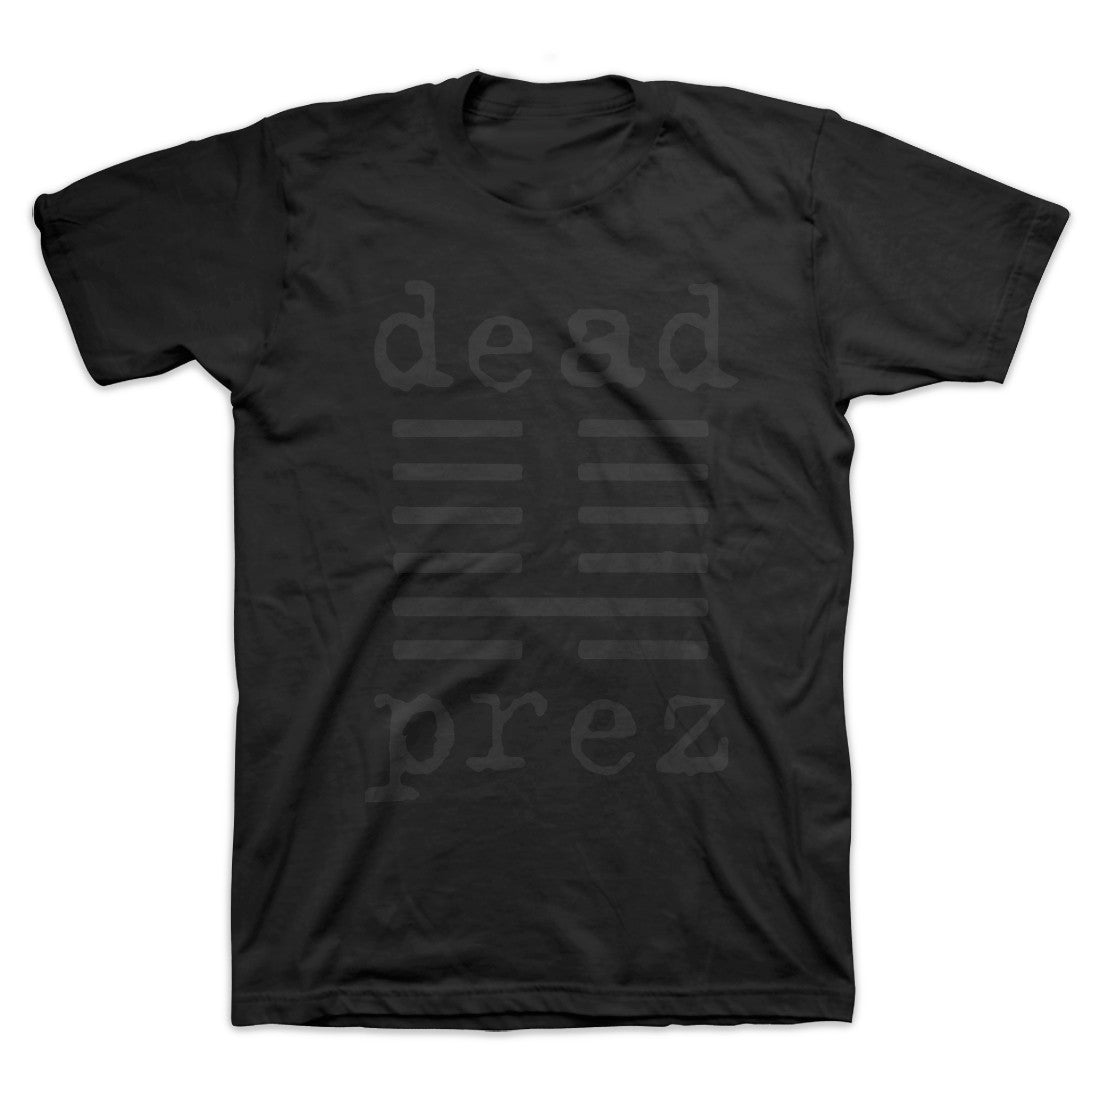 dead prez - Black Logo Men's Shirt, Black